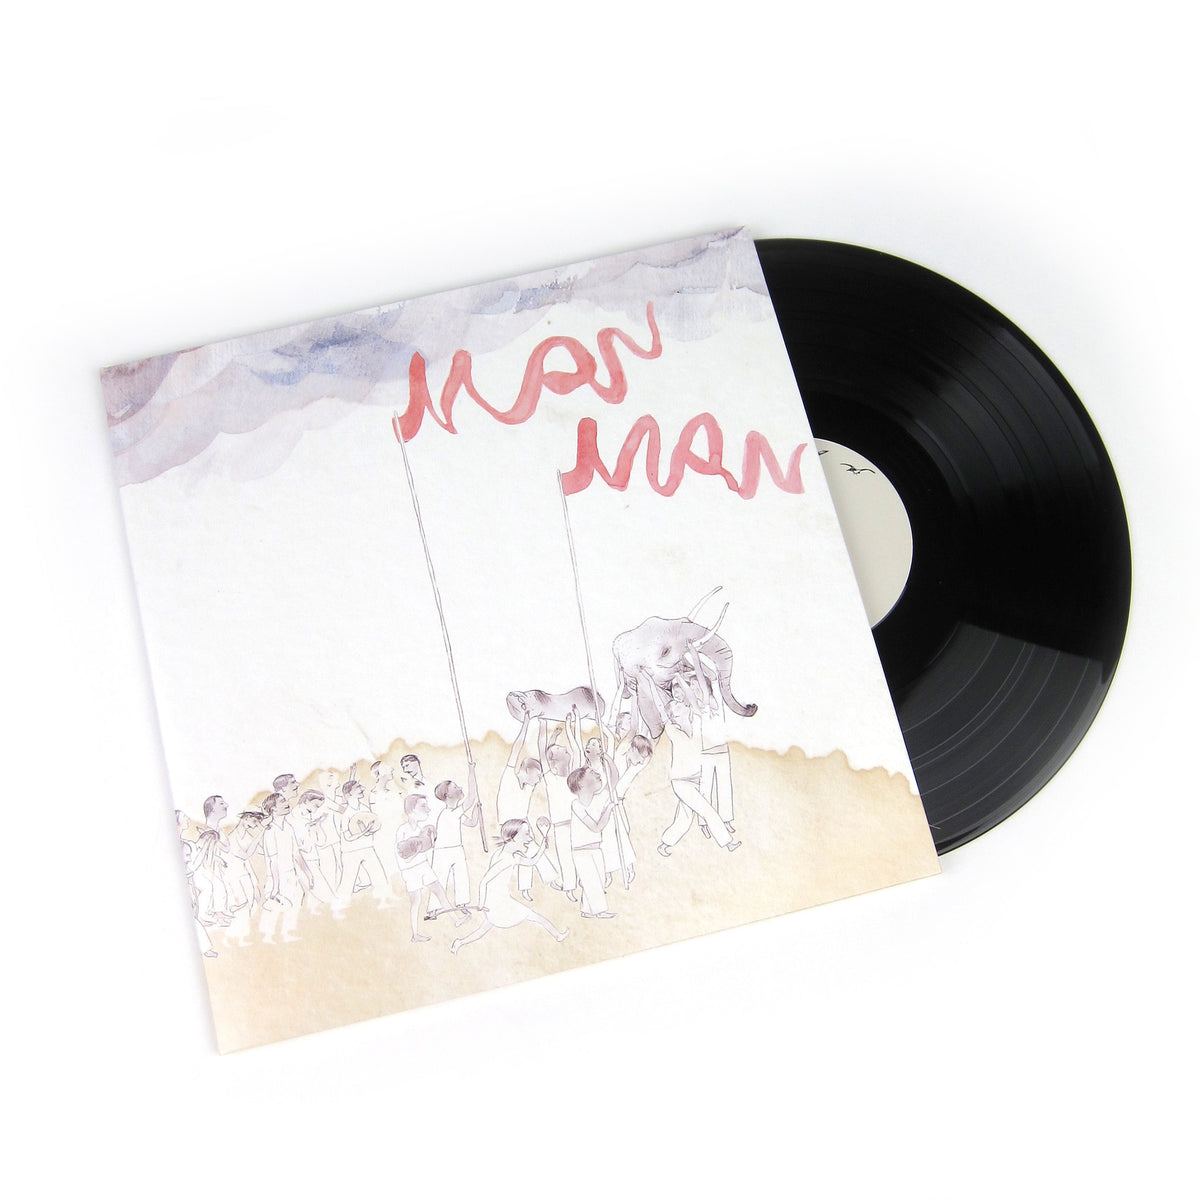 Man Man: Six Demon Bag (180g) Vinyl LP (Record Store Day)